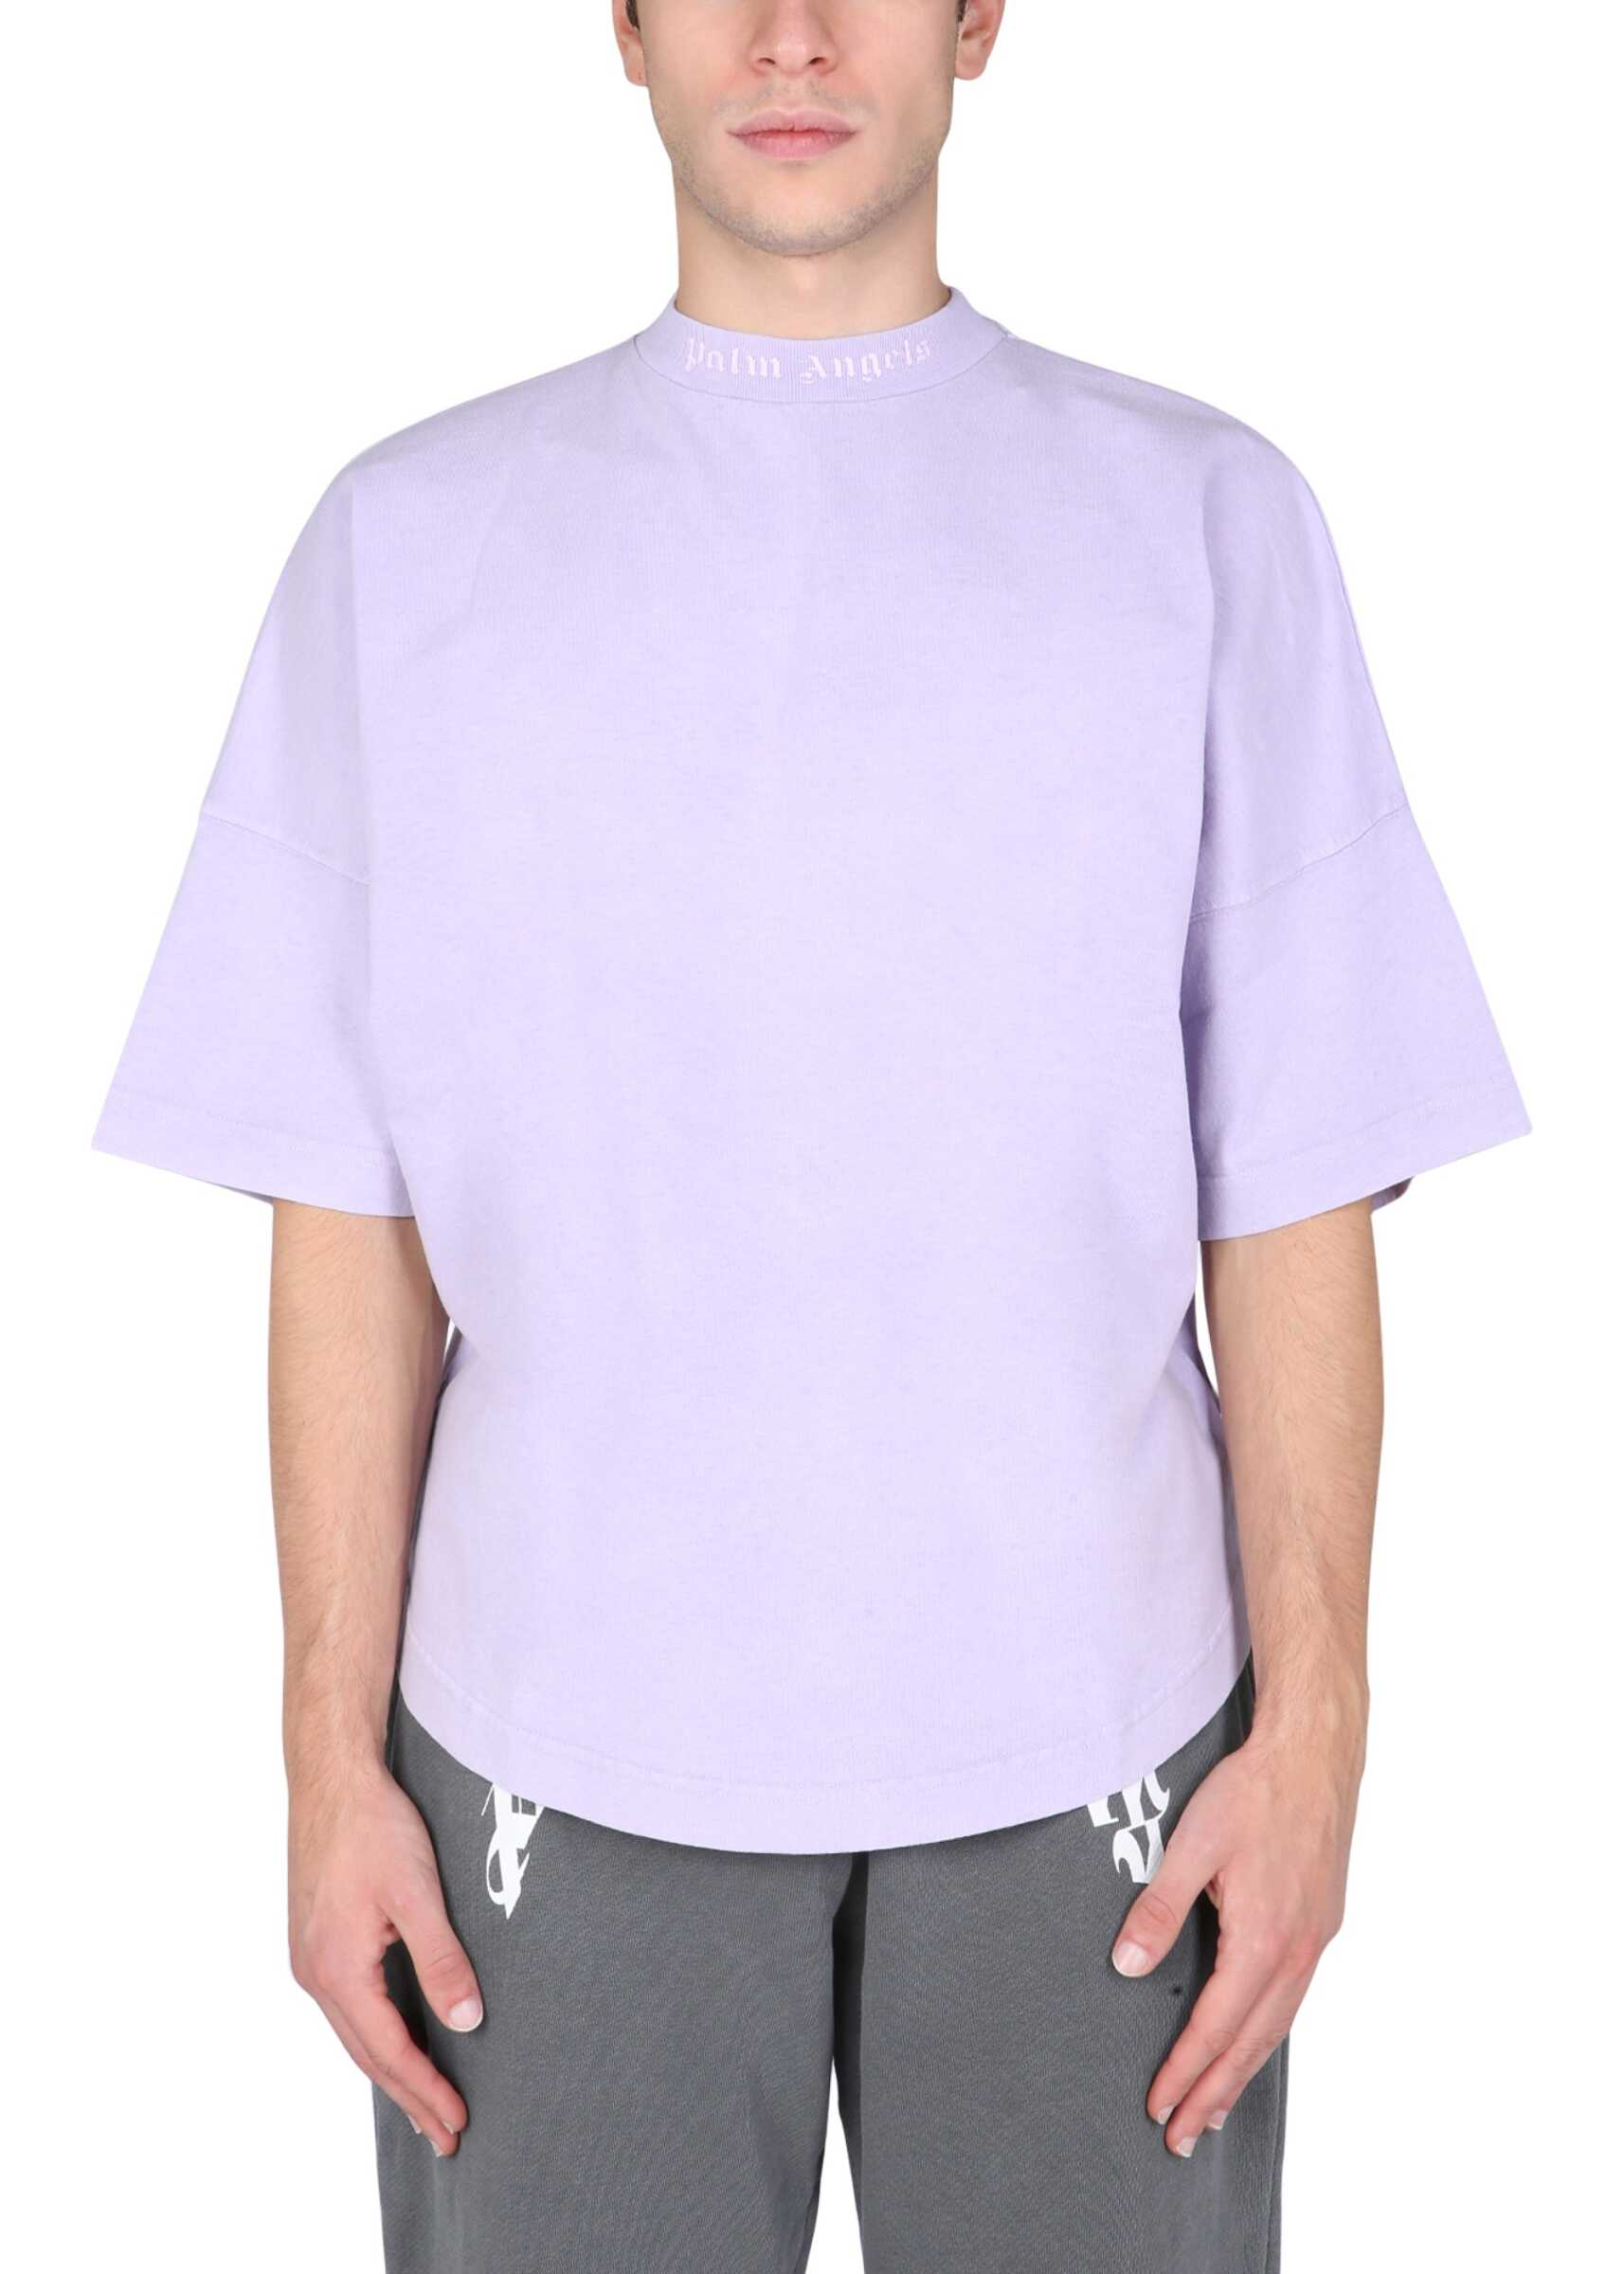 Palm Angels T-Shirt With Doubled Logo PMAA002_F21JER0033601 LILAC image0